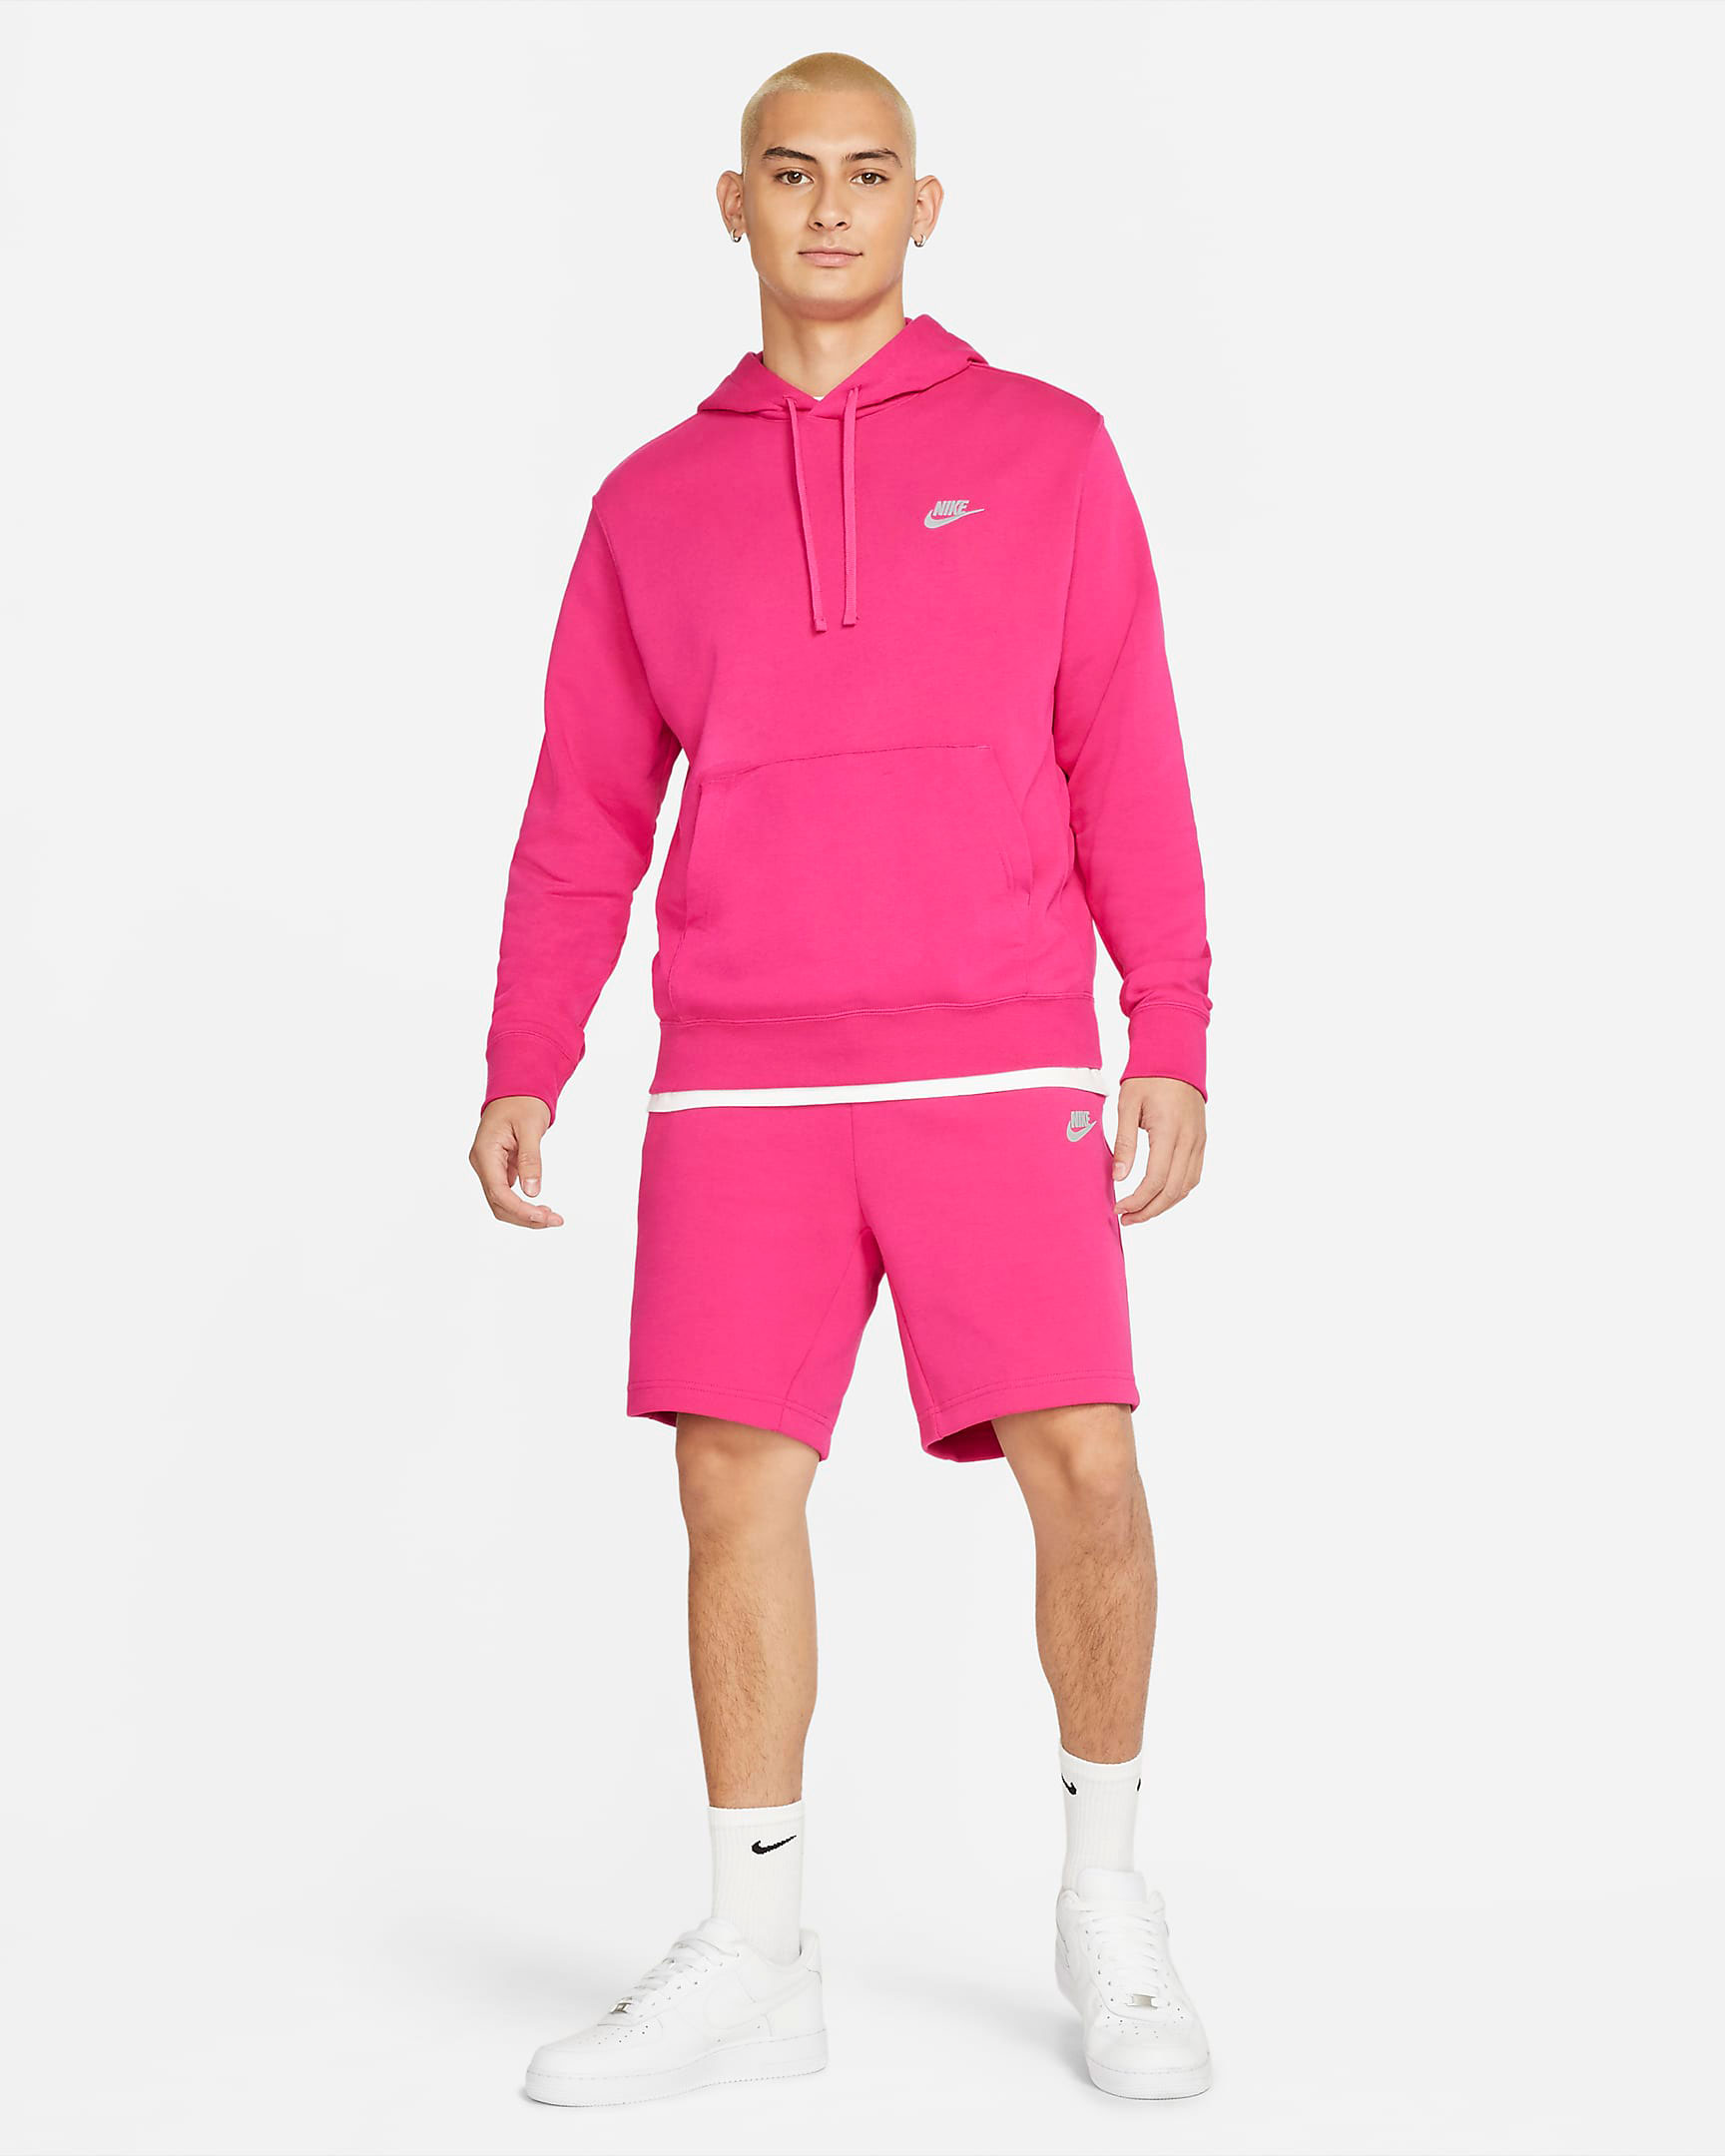 nike-fireberry-pink-hoodie-shorts-outfit